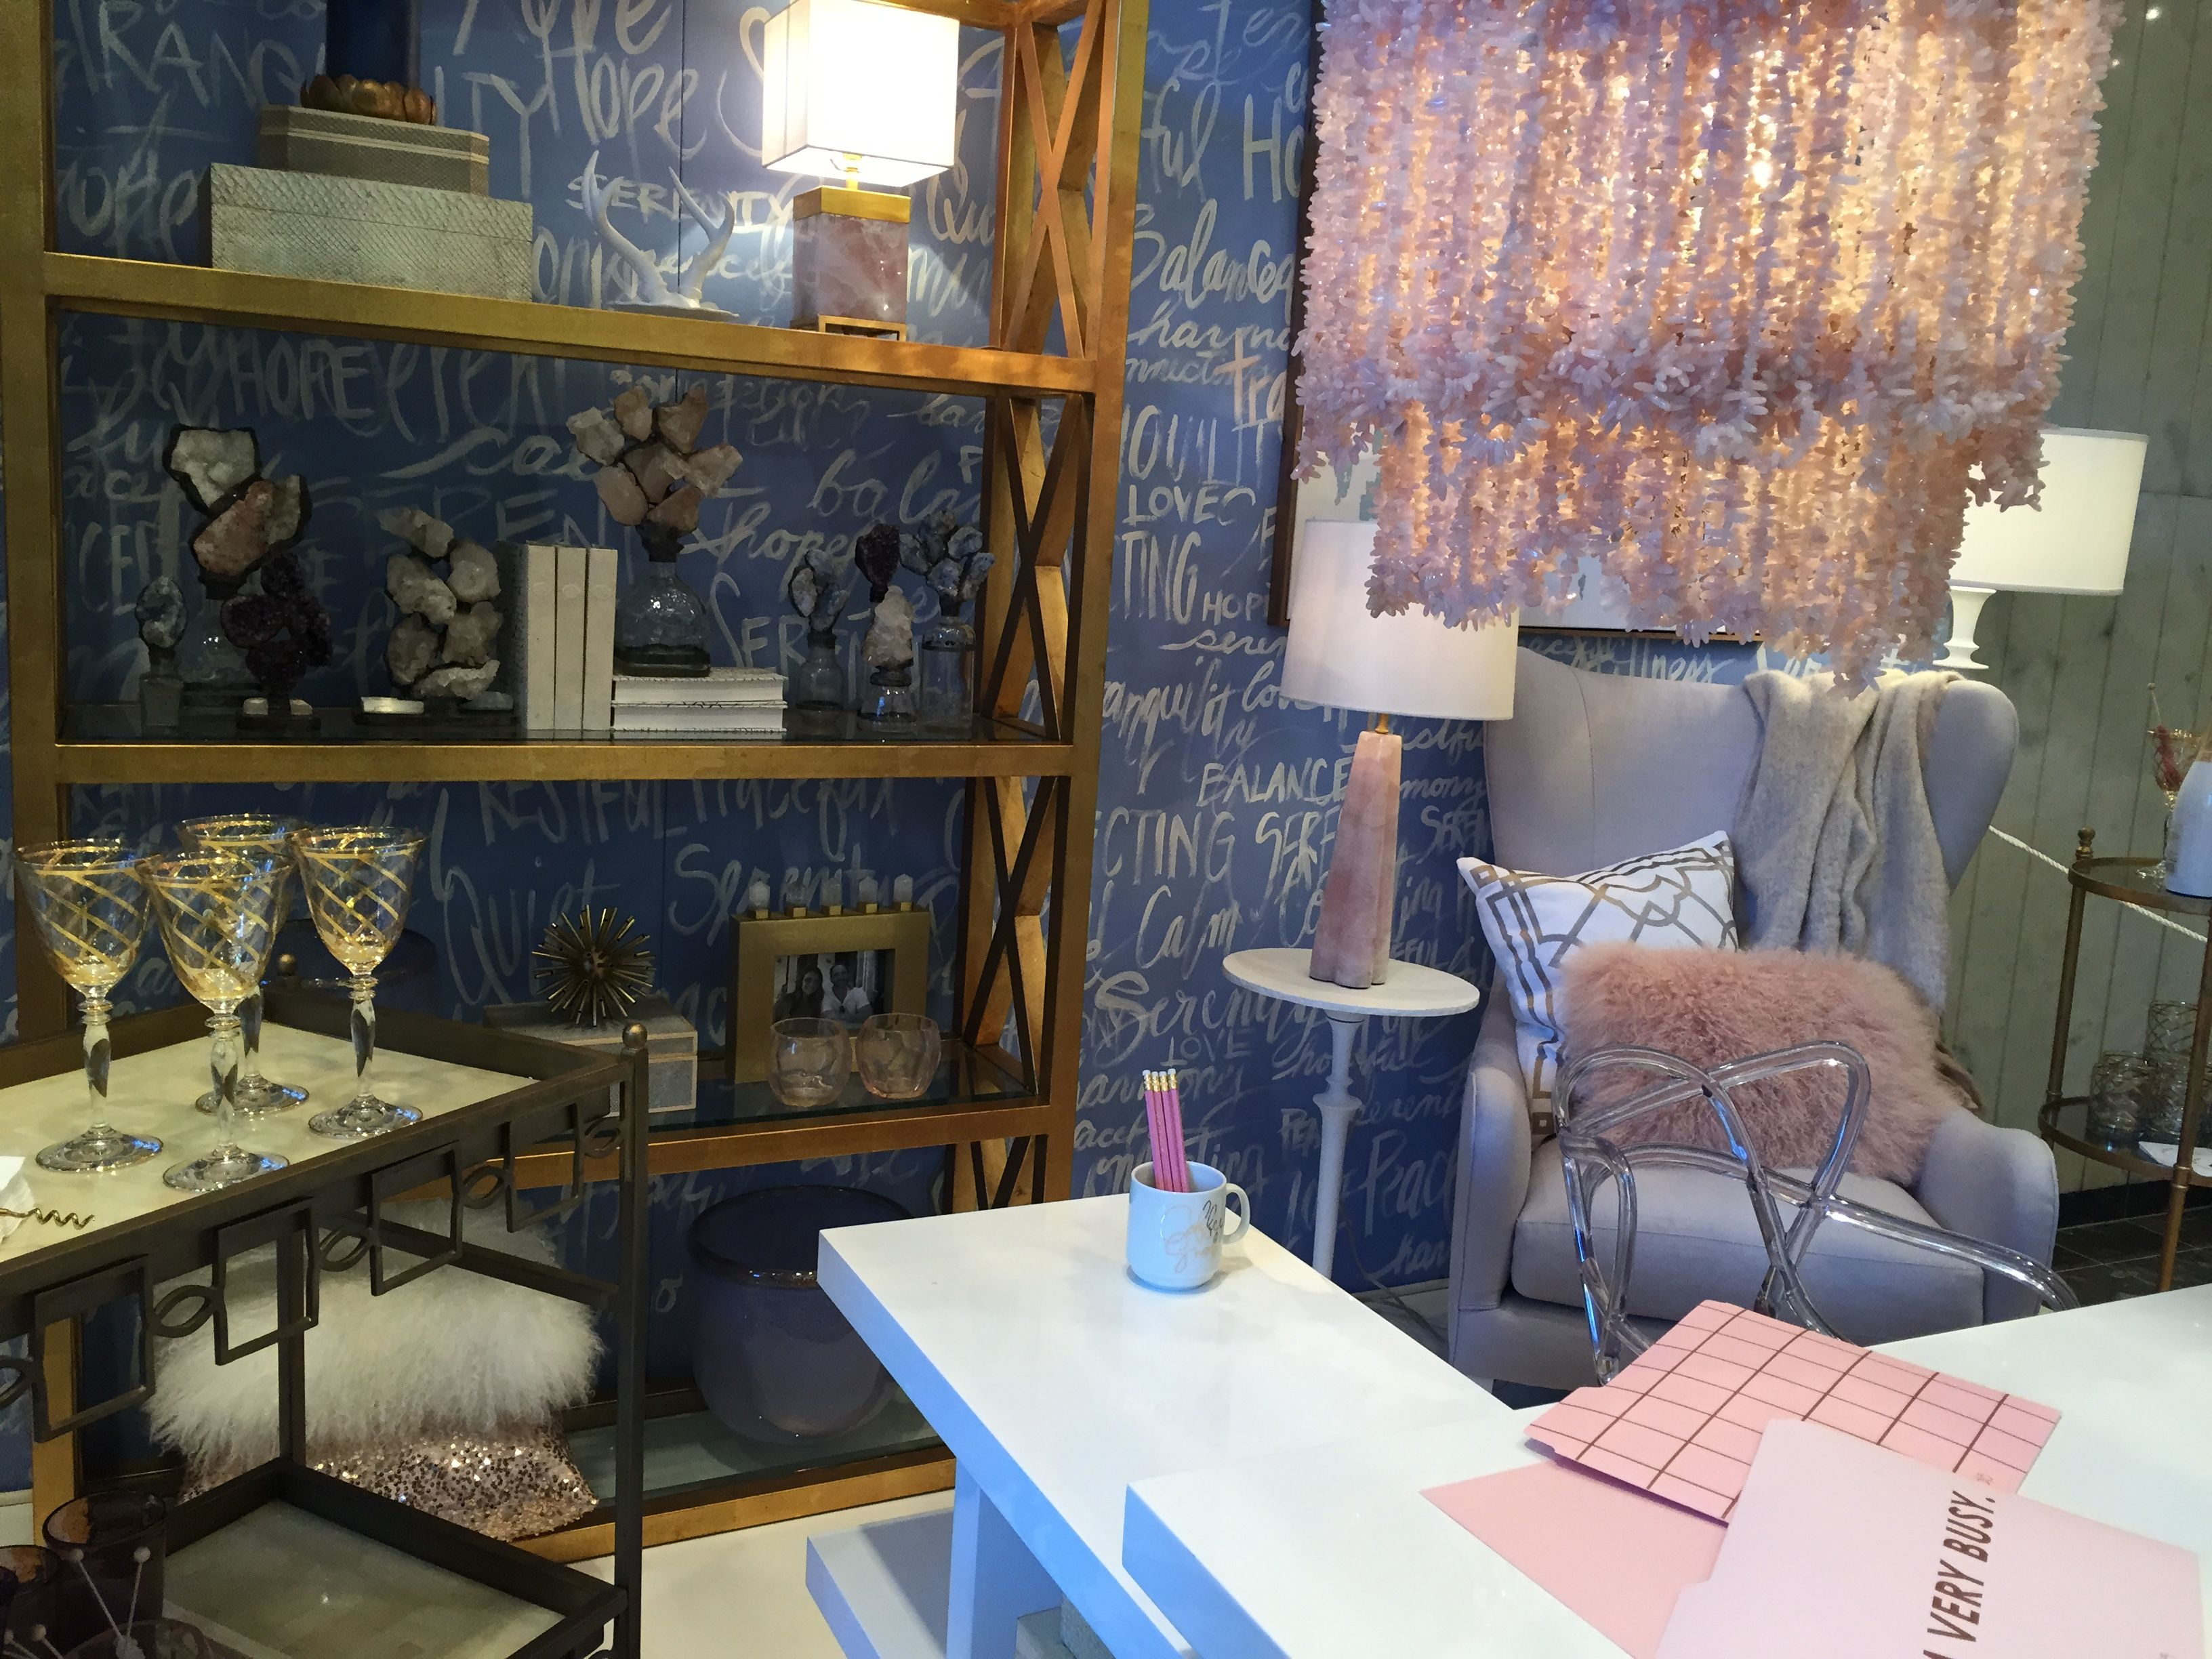 Pantone Color Of The Year Serenity And Rose Quartz At The Home And Furniture  Market In Atlanta.